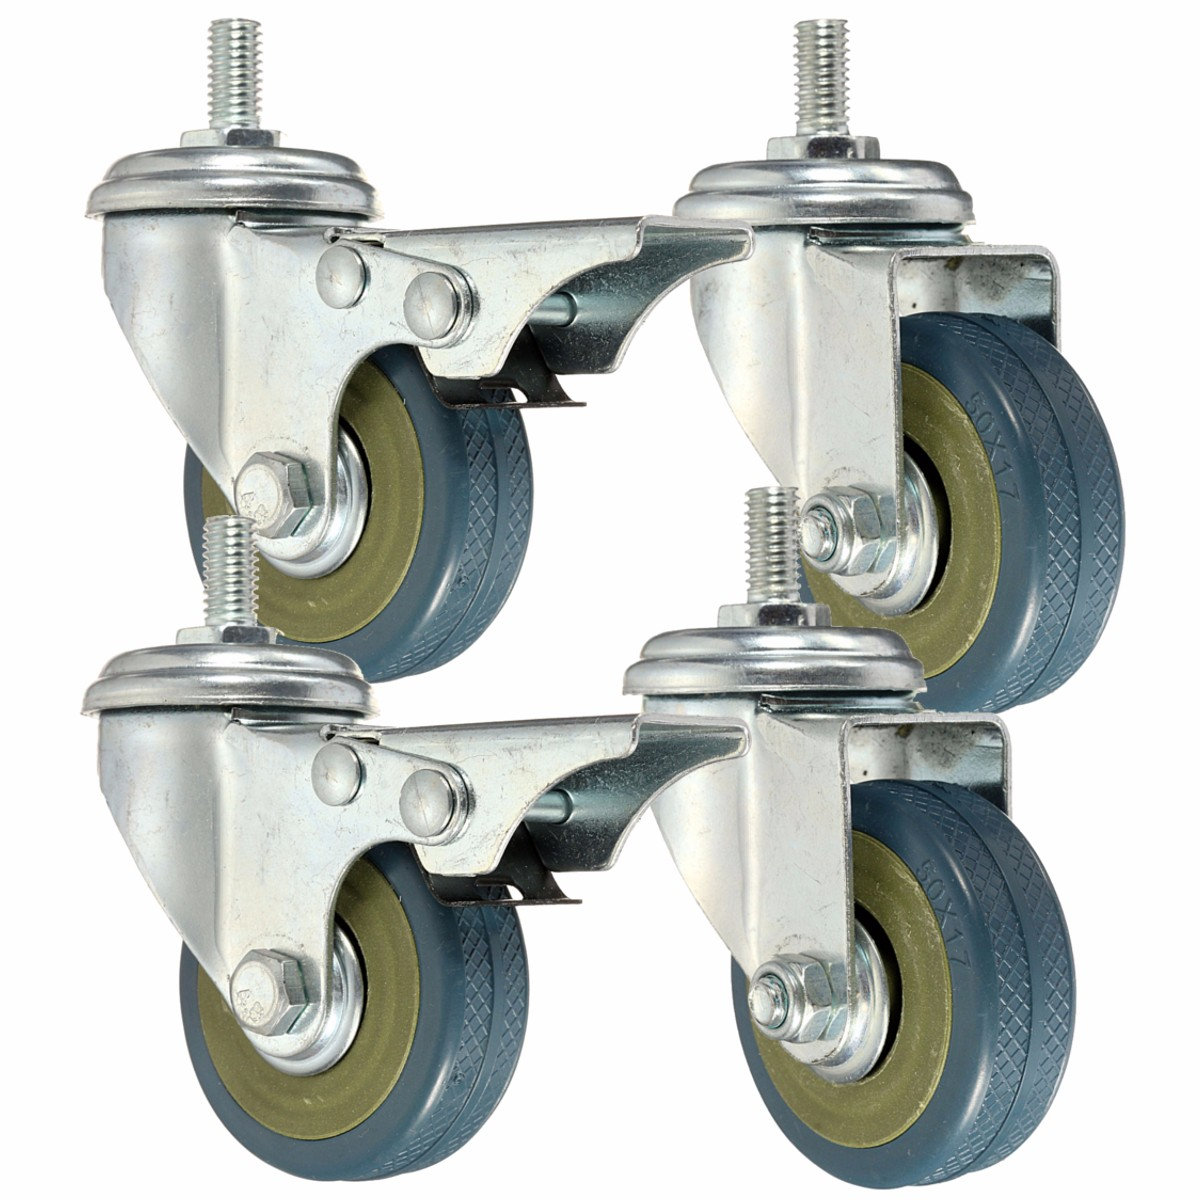 4pcs Heavy Duty Rubber Swivel Castor Wheels Trolley Furniture Caster